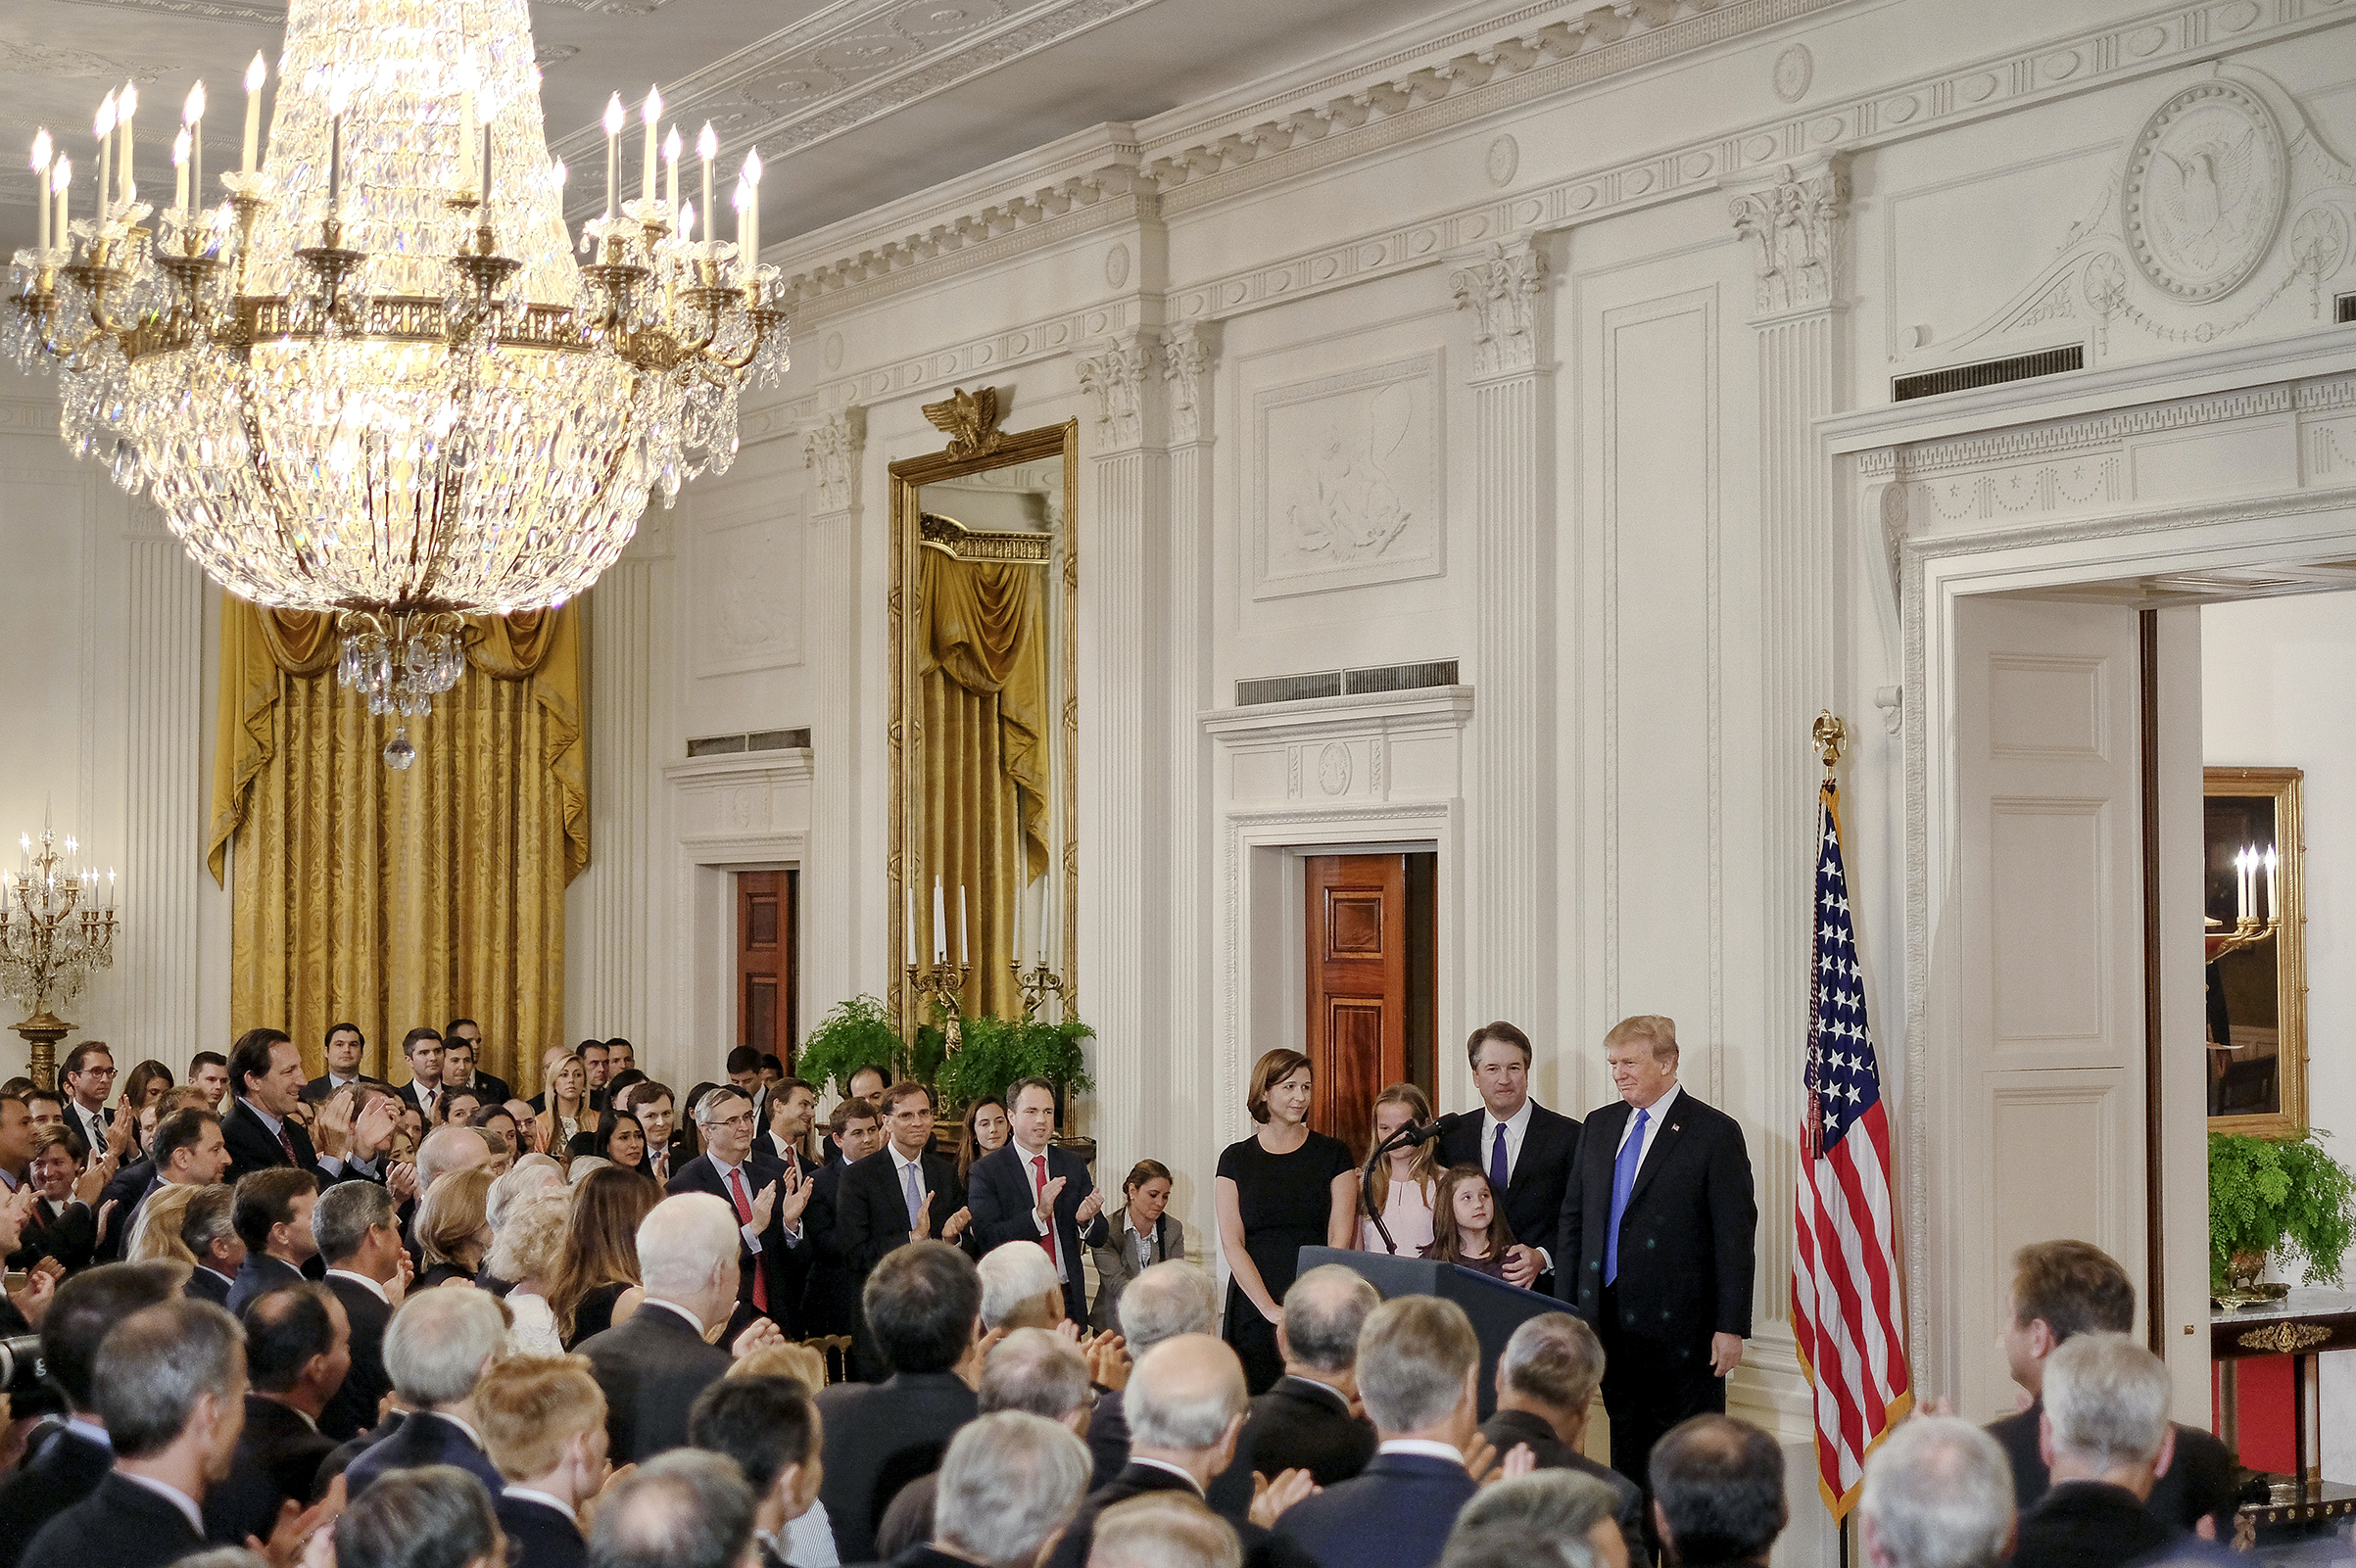 President Trump nominated                      Brett Kavanaugh to the Supreme Court in a prime-time address from the East Room on July 9